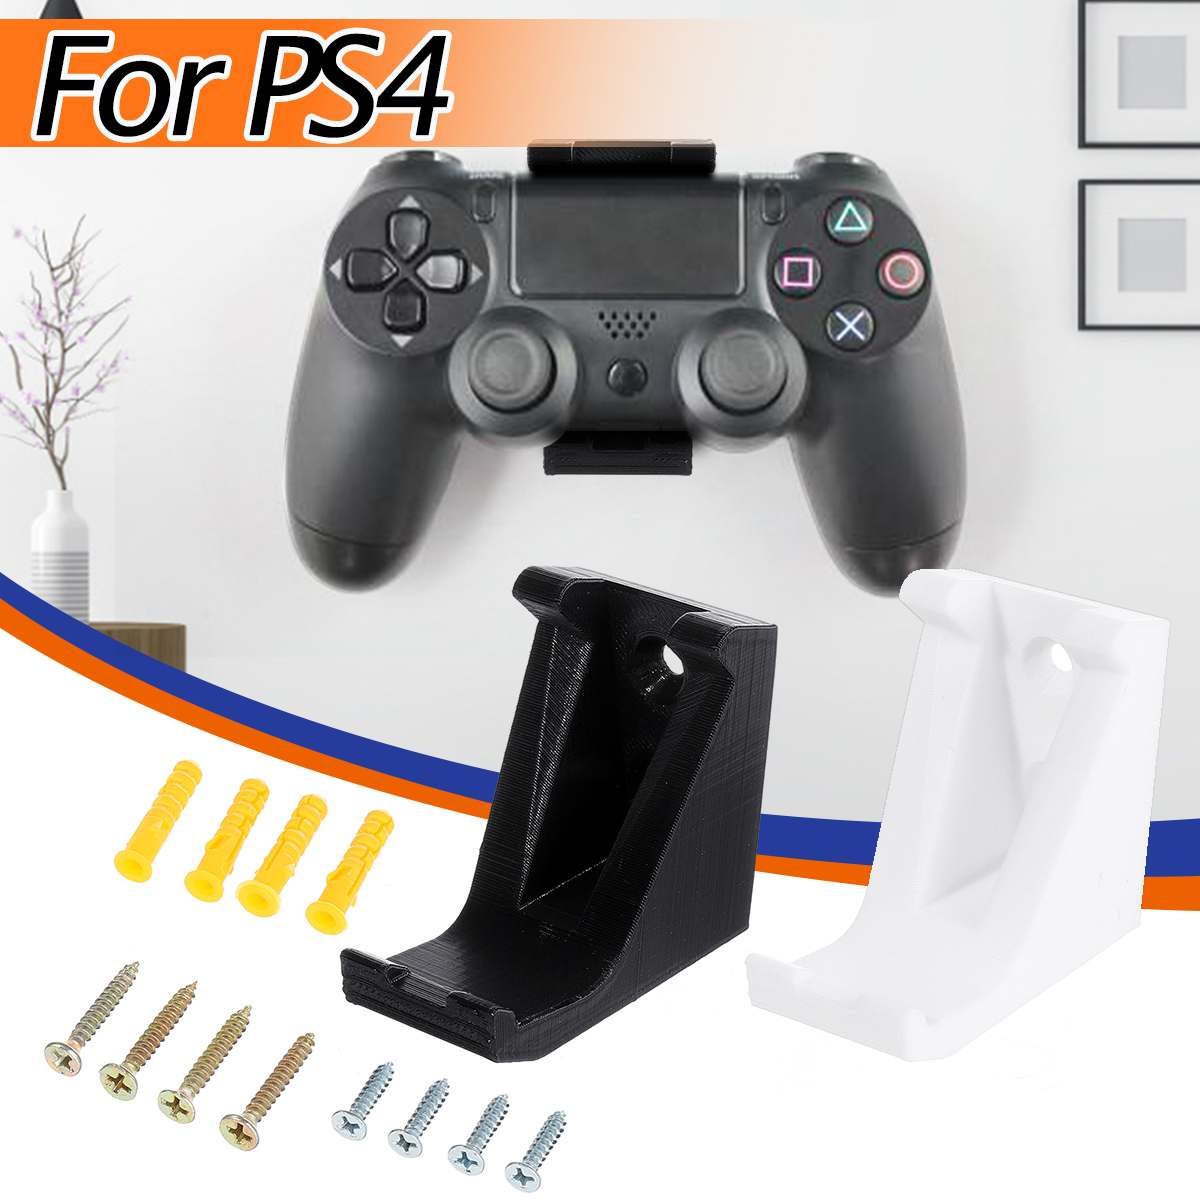 White/ Black Wall Holder For PS4 For Playstation 4 Controller Game Pad Dock Gamepad Stand Holder 3D Printed with ScrewsWhite/ Black Wall Holder For PS4 For Playstation 4 Controller Game Pad Dock Gamepad Stand Holder 3D Printed with Screws